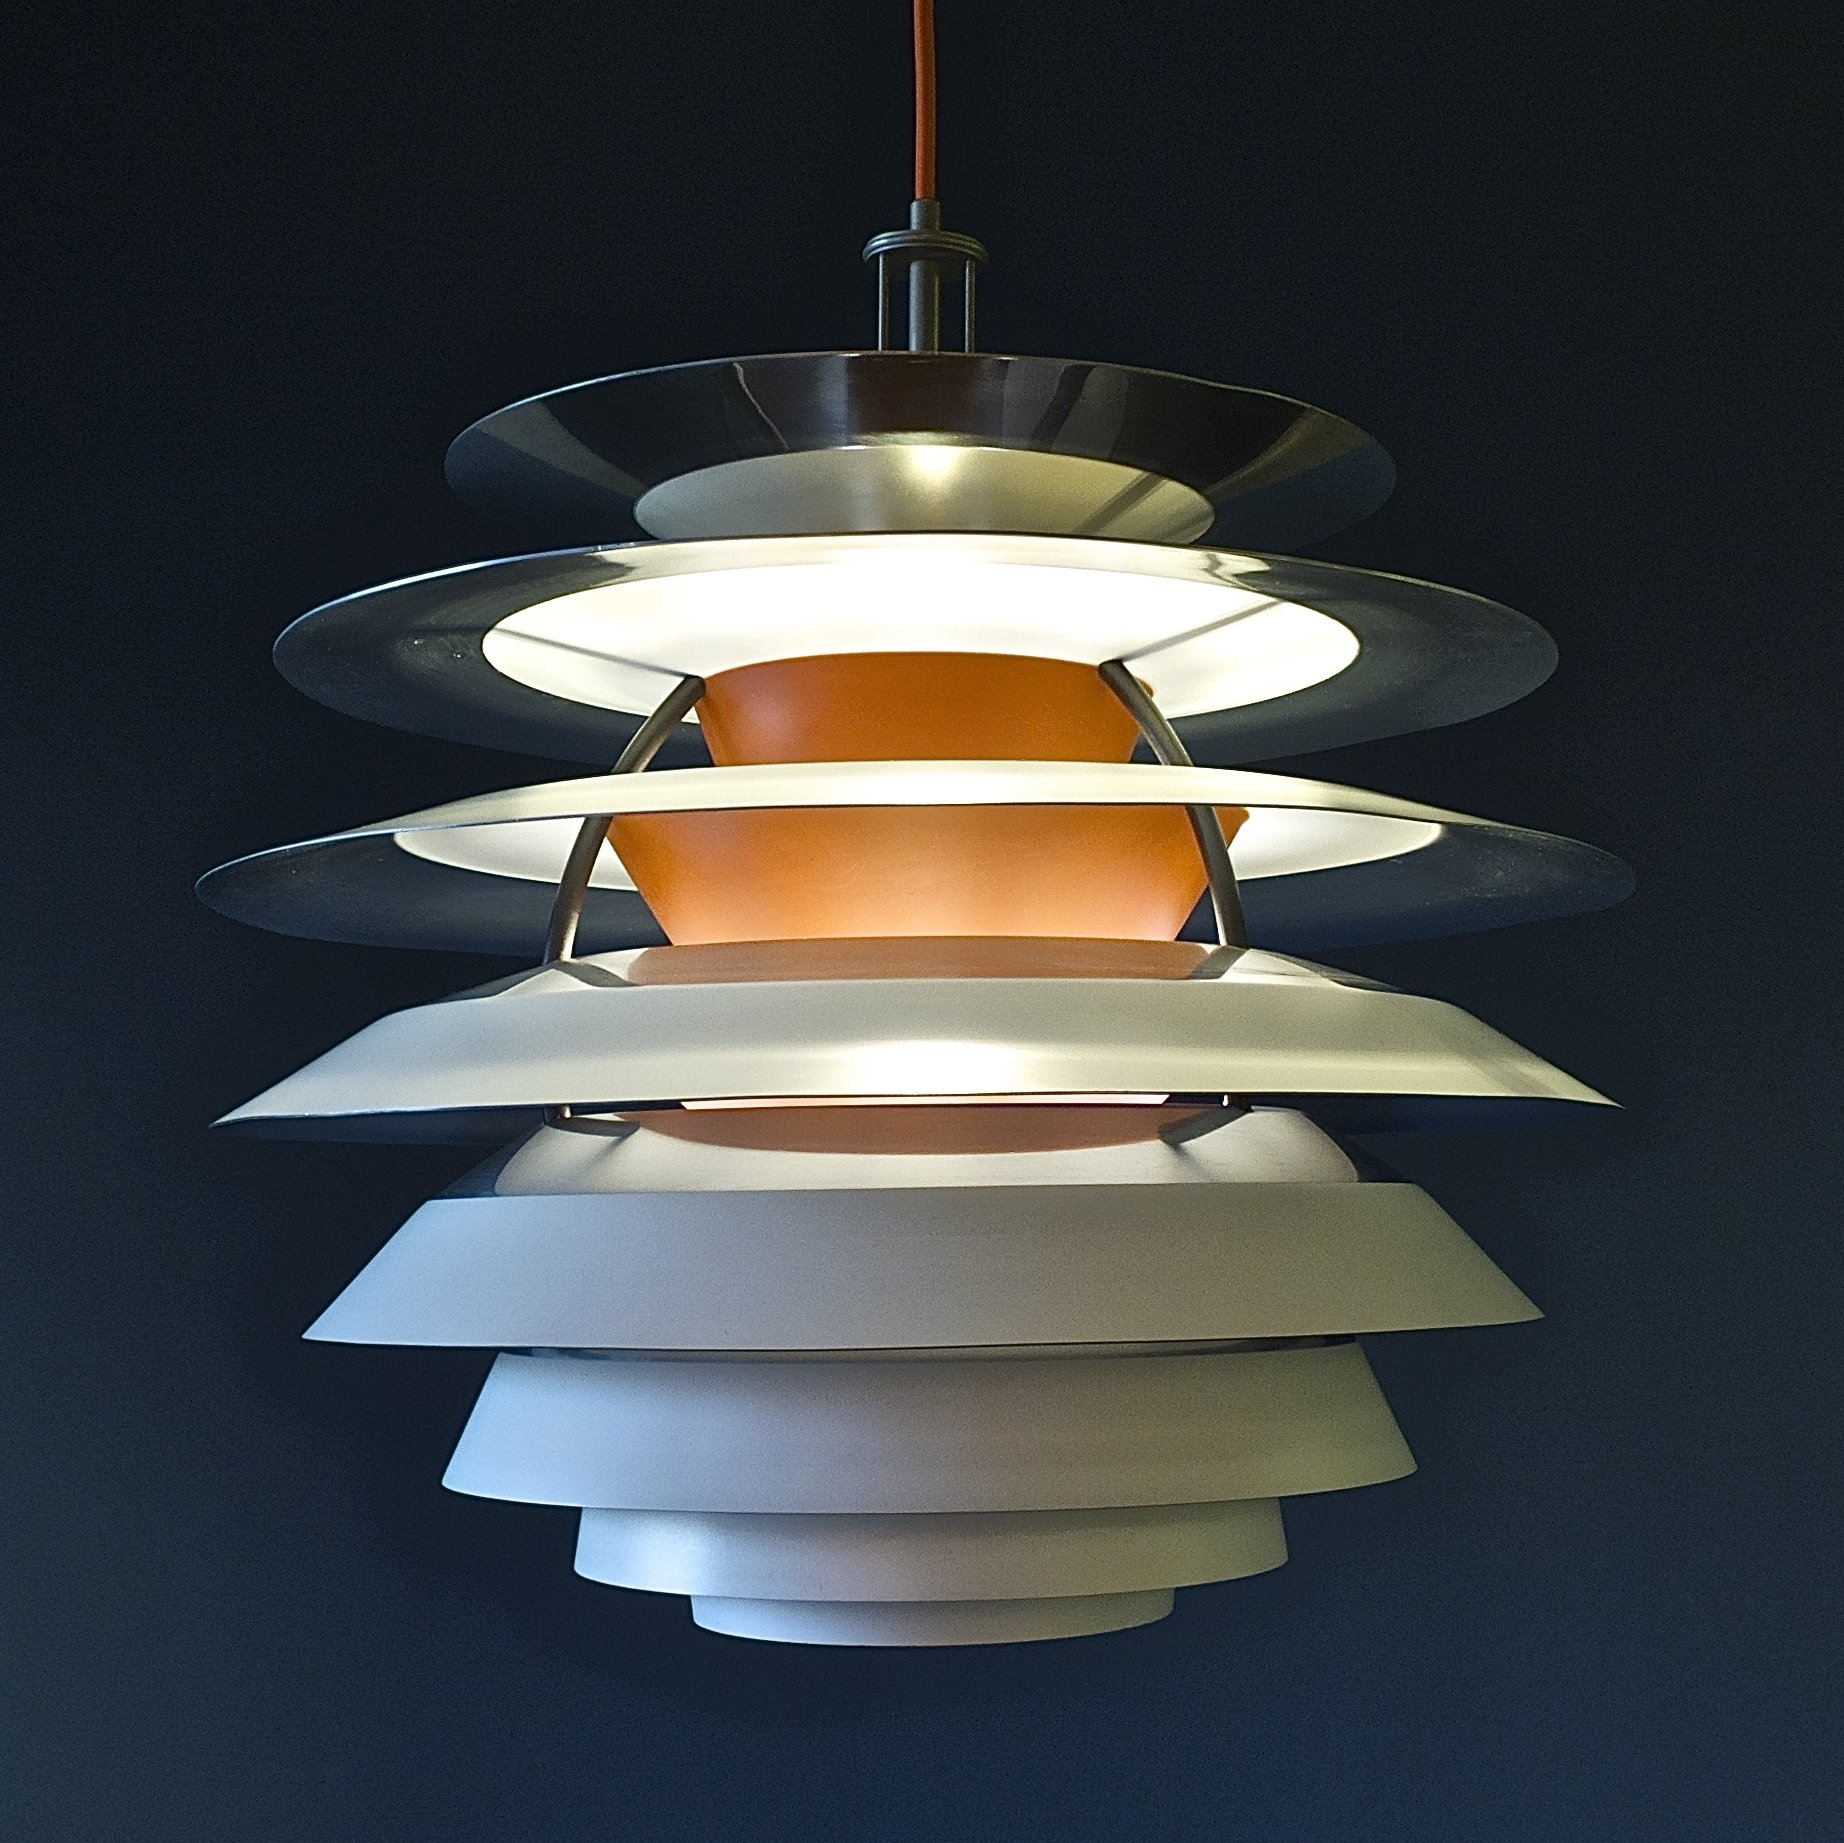 Hanging Lamp Philippines: PH Contrast Hanging Lamp By Poul Henningsen For Louis